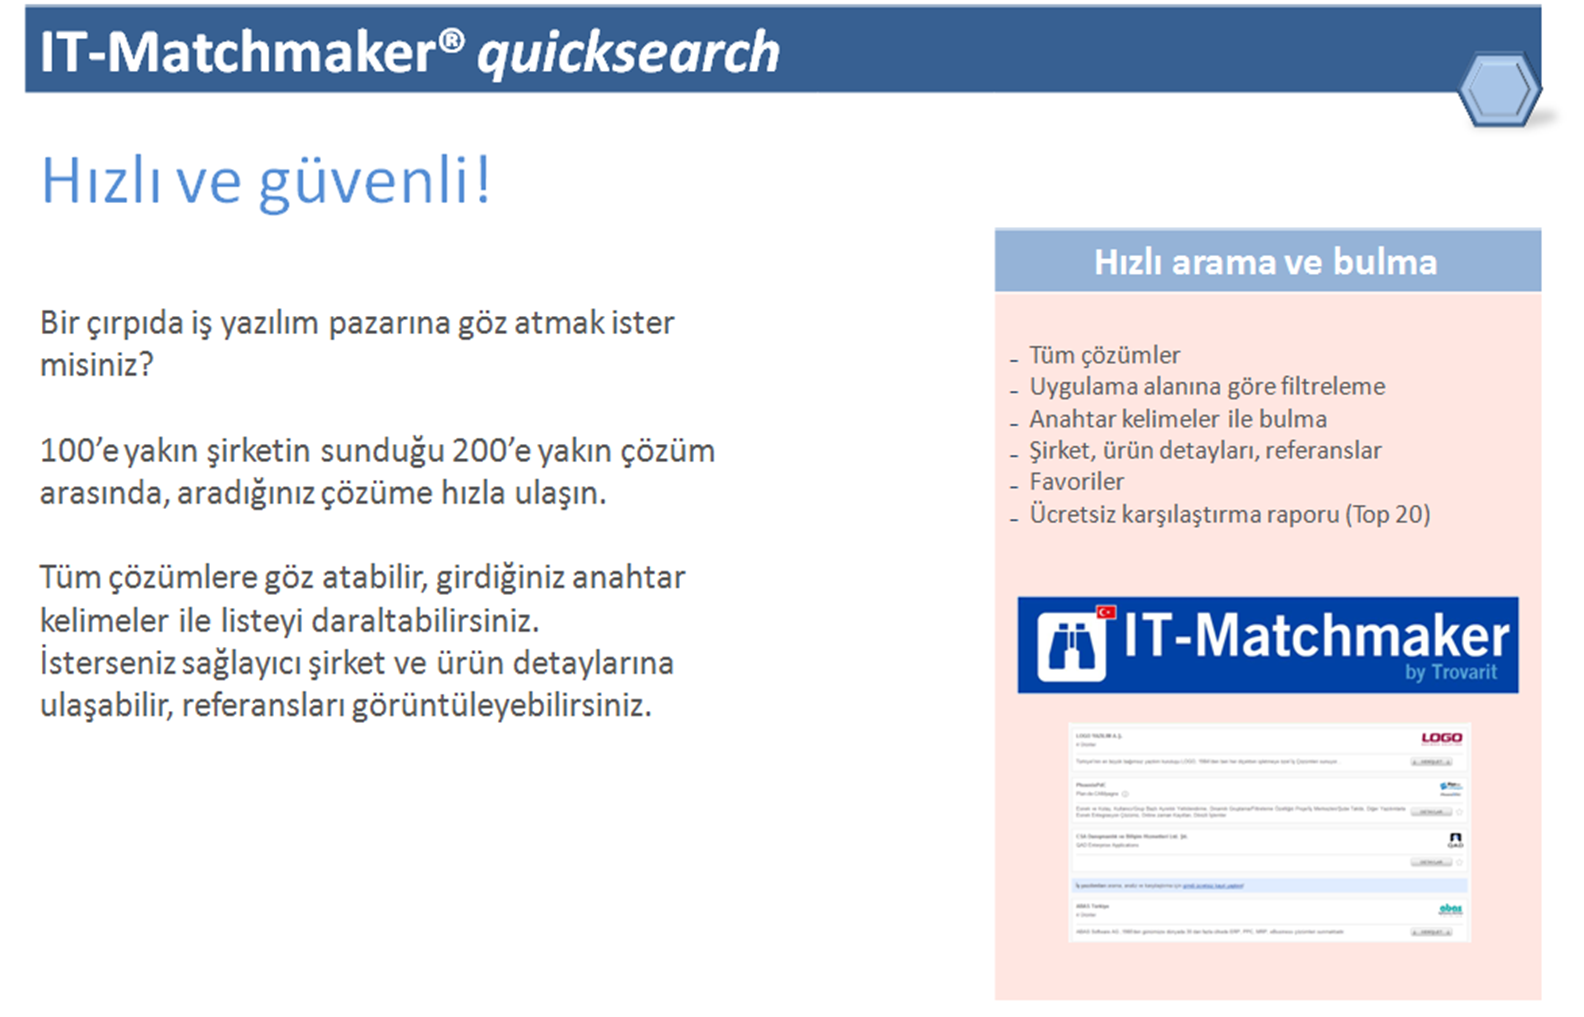 ITM_FC_Quicksearch